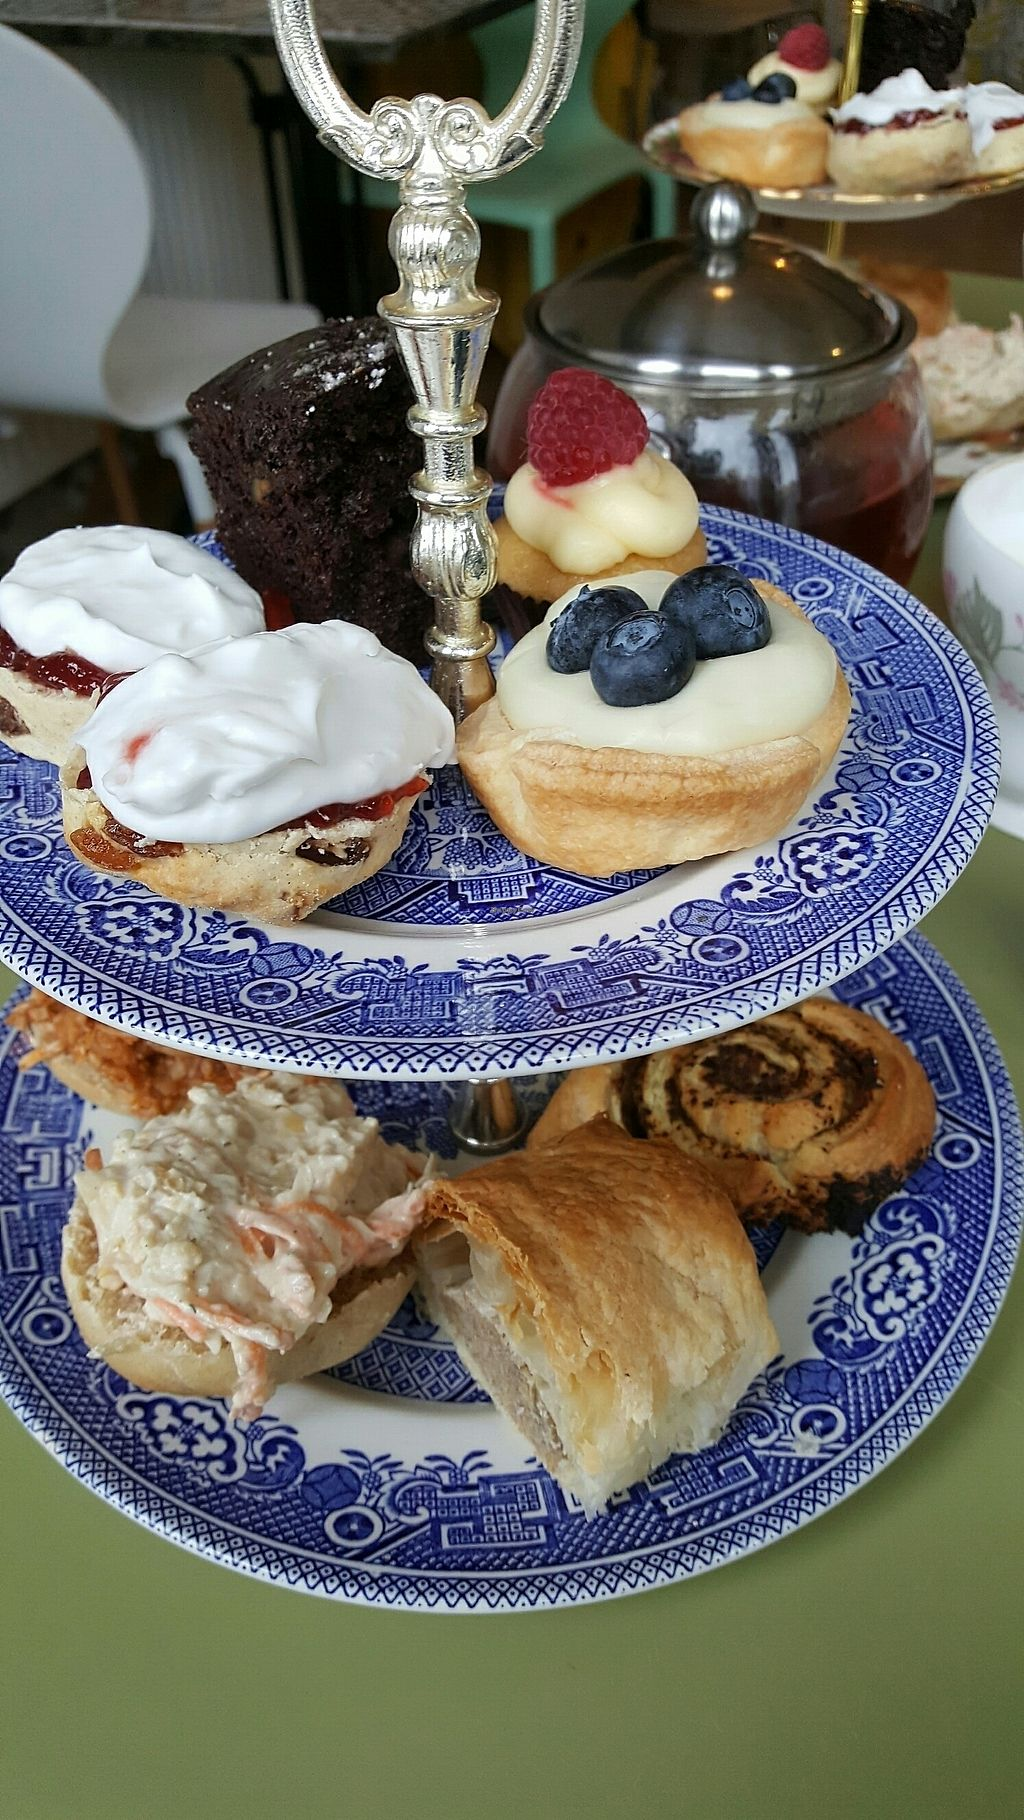 """Photo of The Peppercorn  by <a href=""""/members/profile/LaylaEllis"""">LaylaEllis</a> <br/>Afternoon Tea selection  <br/> July 11, 2017  - <a href='/contact/abuse/image/92548/279218'>Report</a>"""